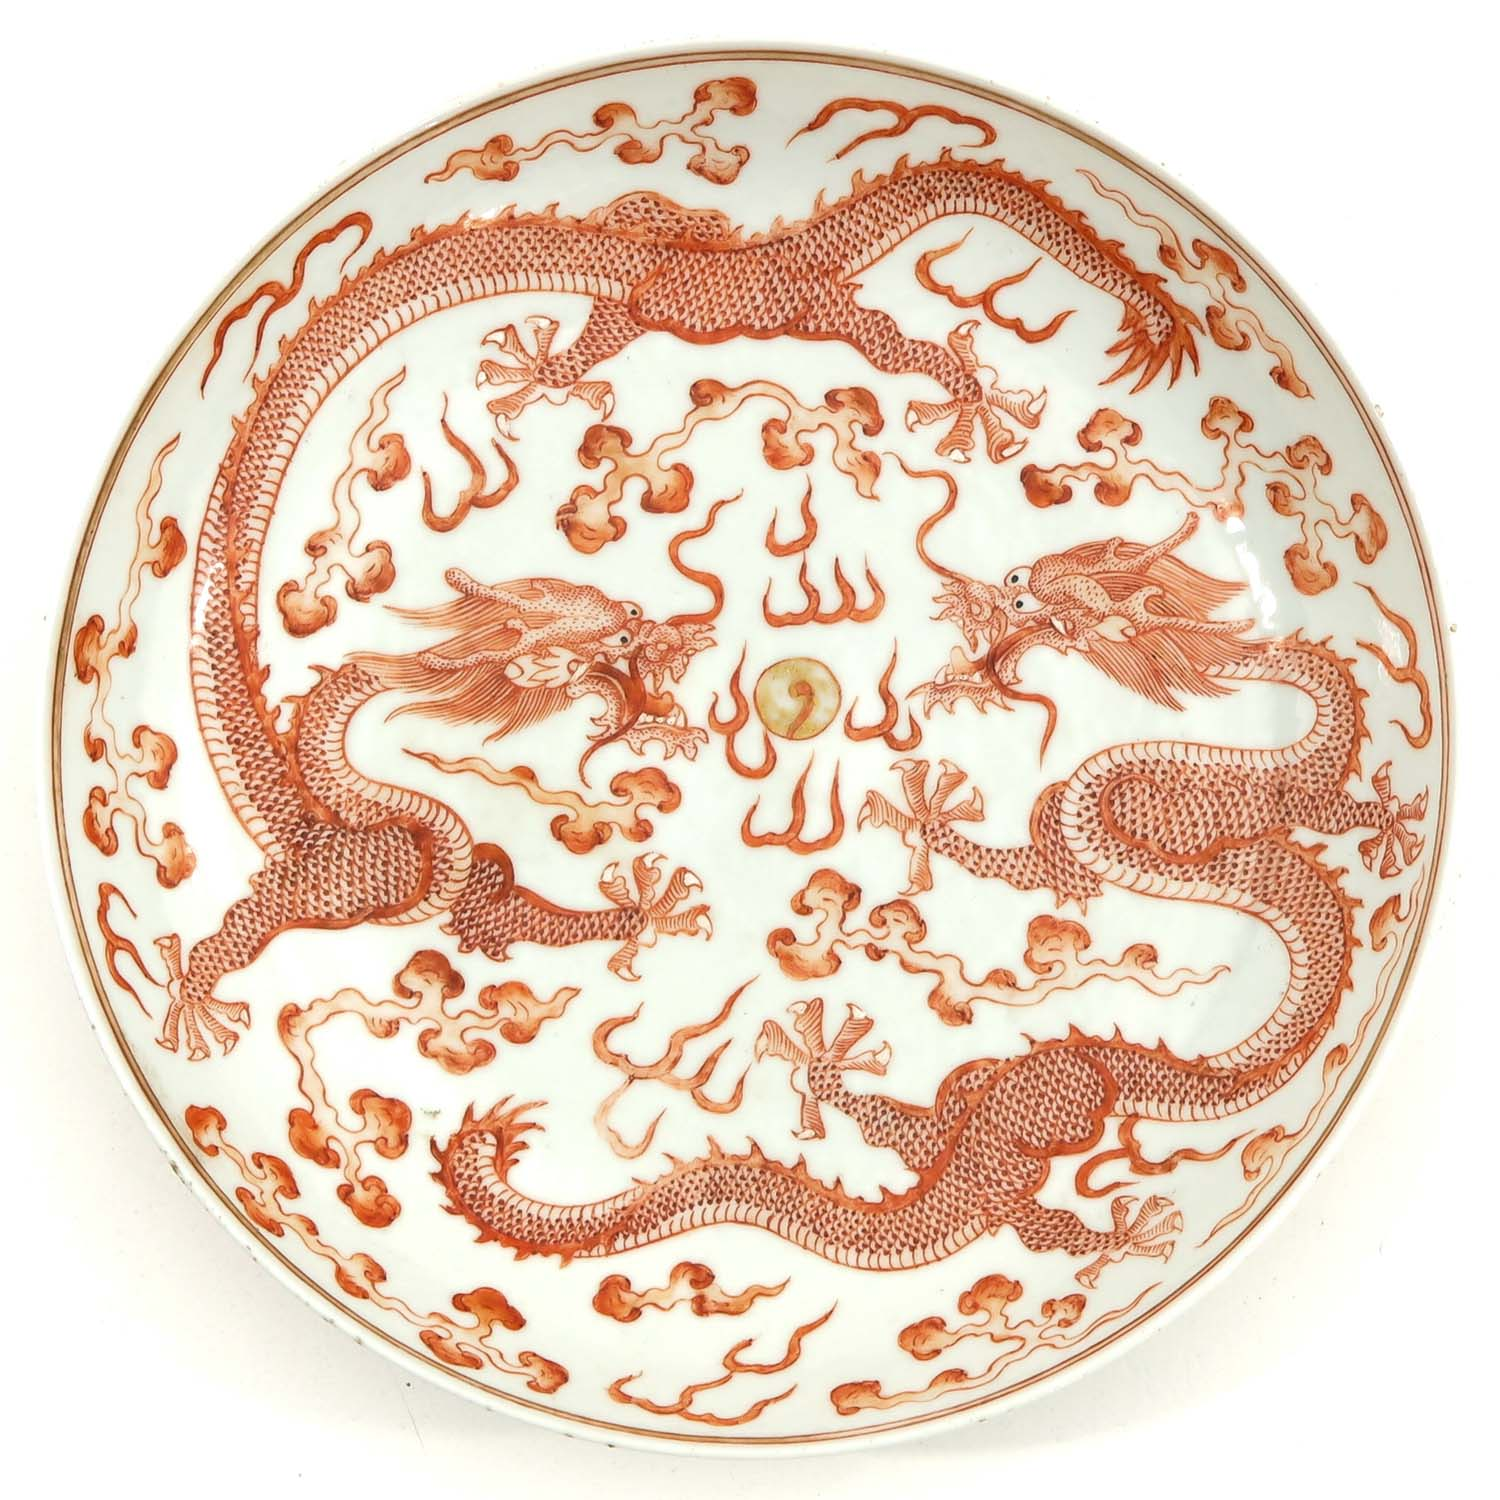 A Pair of Dragon Decor Plates - Image 5 of 10